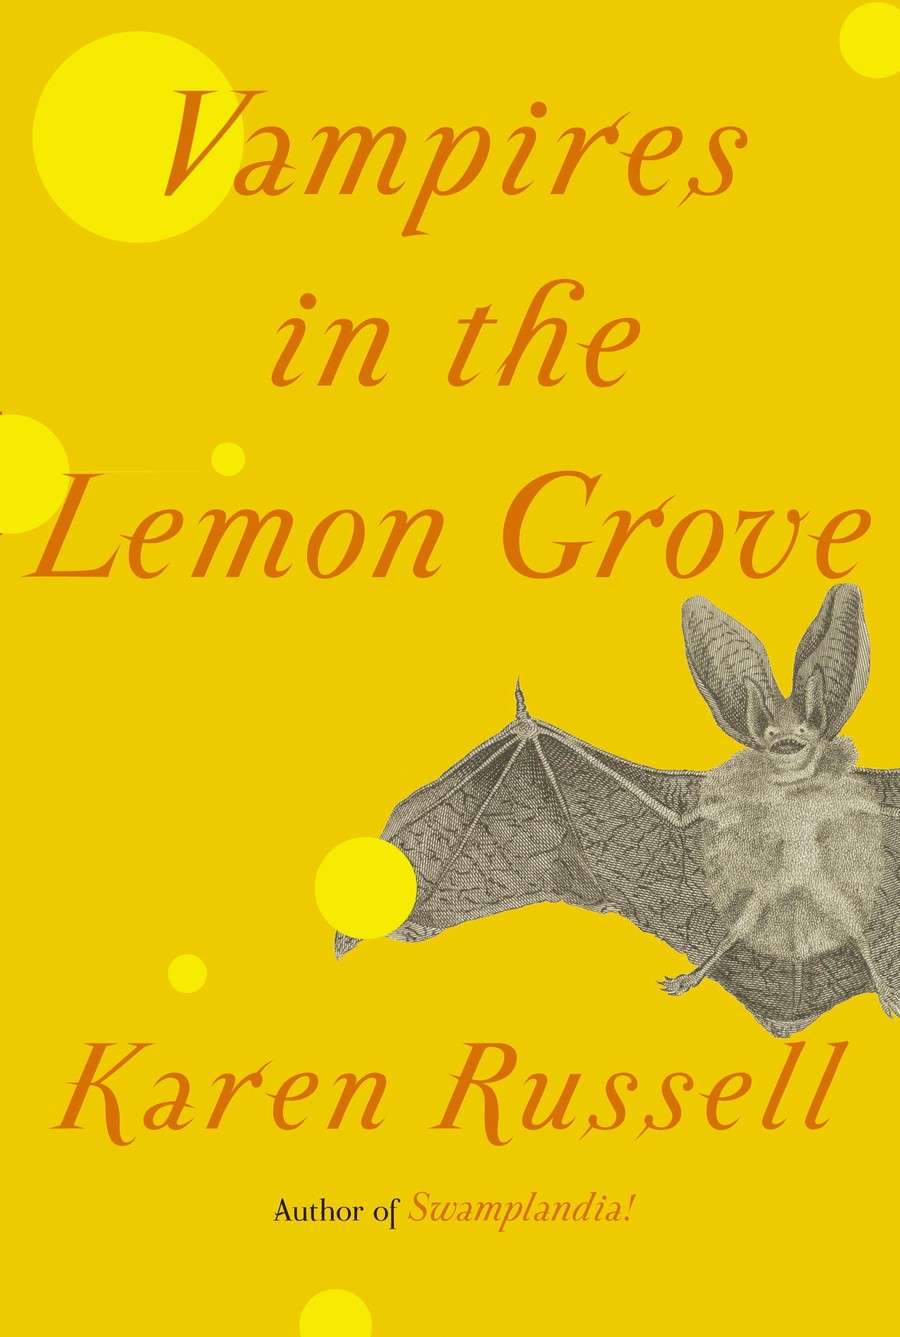 Karen Russell's new lemon-colored book is batty in the best of ways.